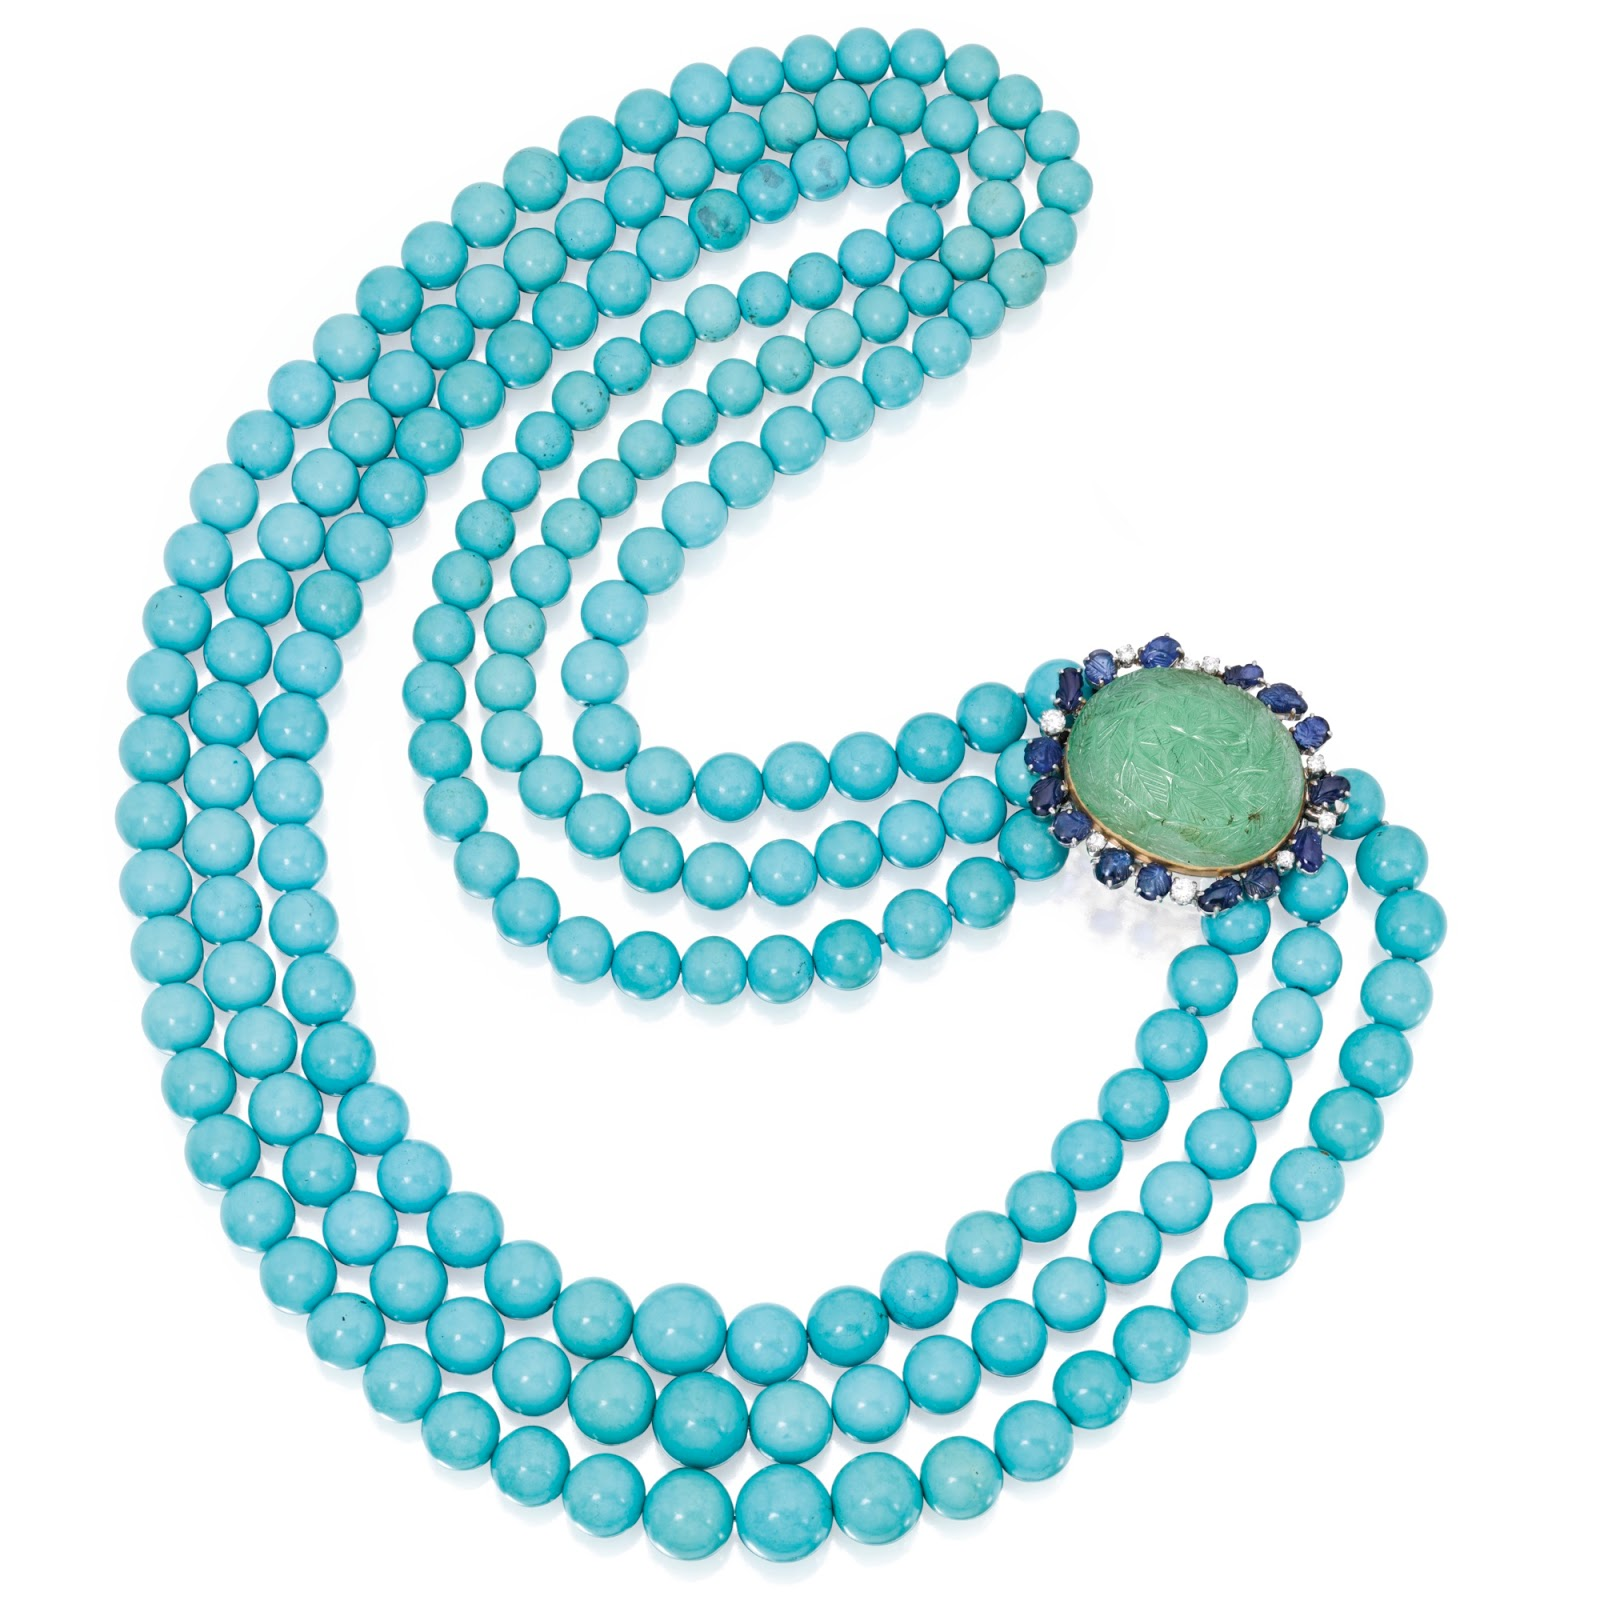 14 Karat White Gold, Turquoise, Emerald, Sapphire and Diamond Necklace-Brooch